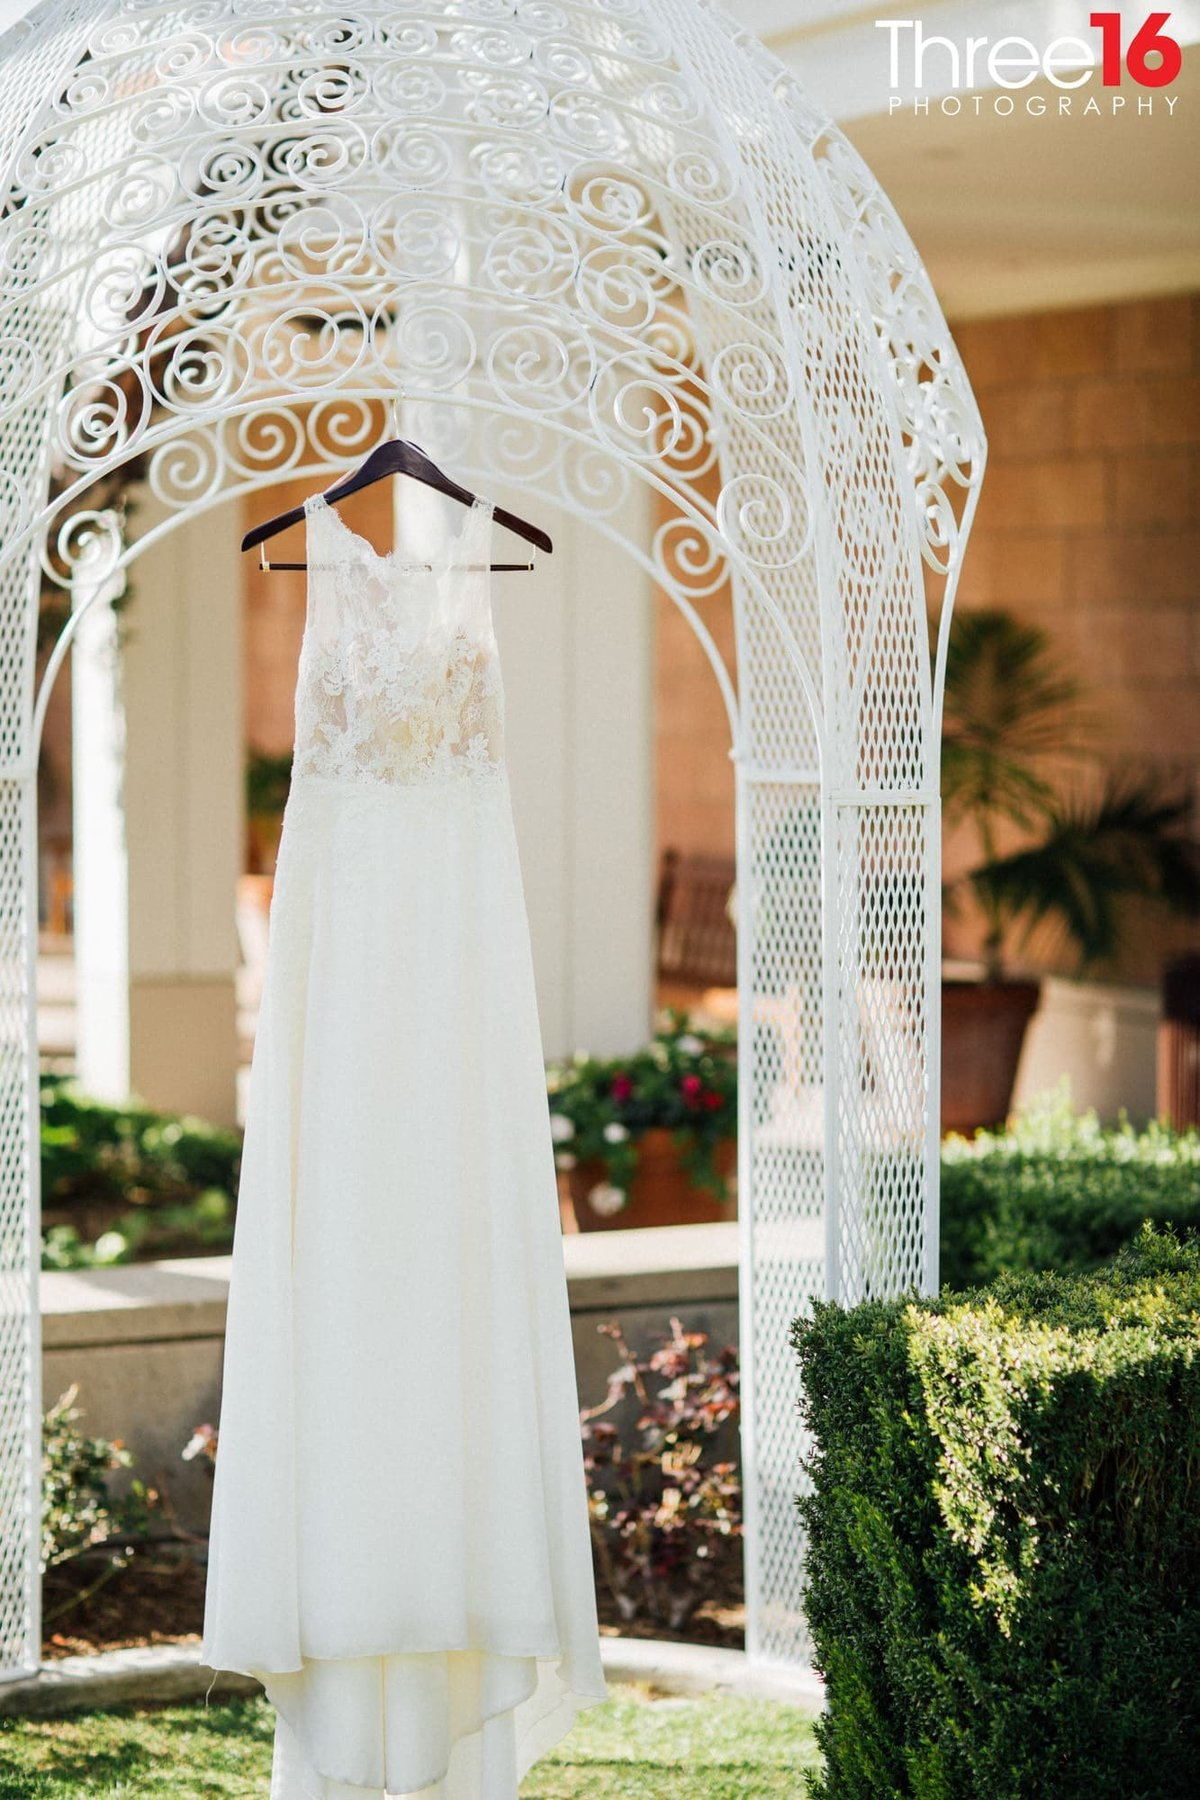 Bride's dress hangs from a small gazebo